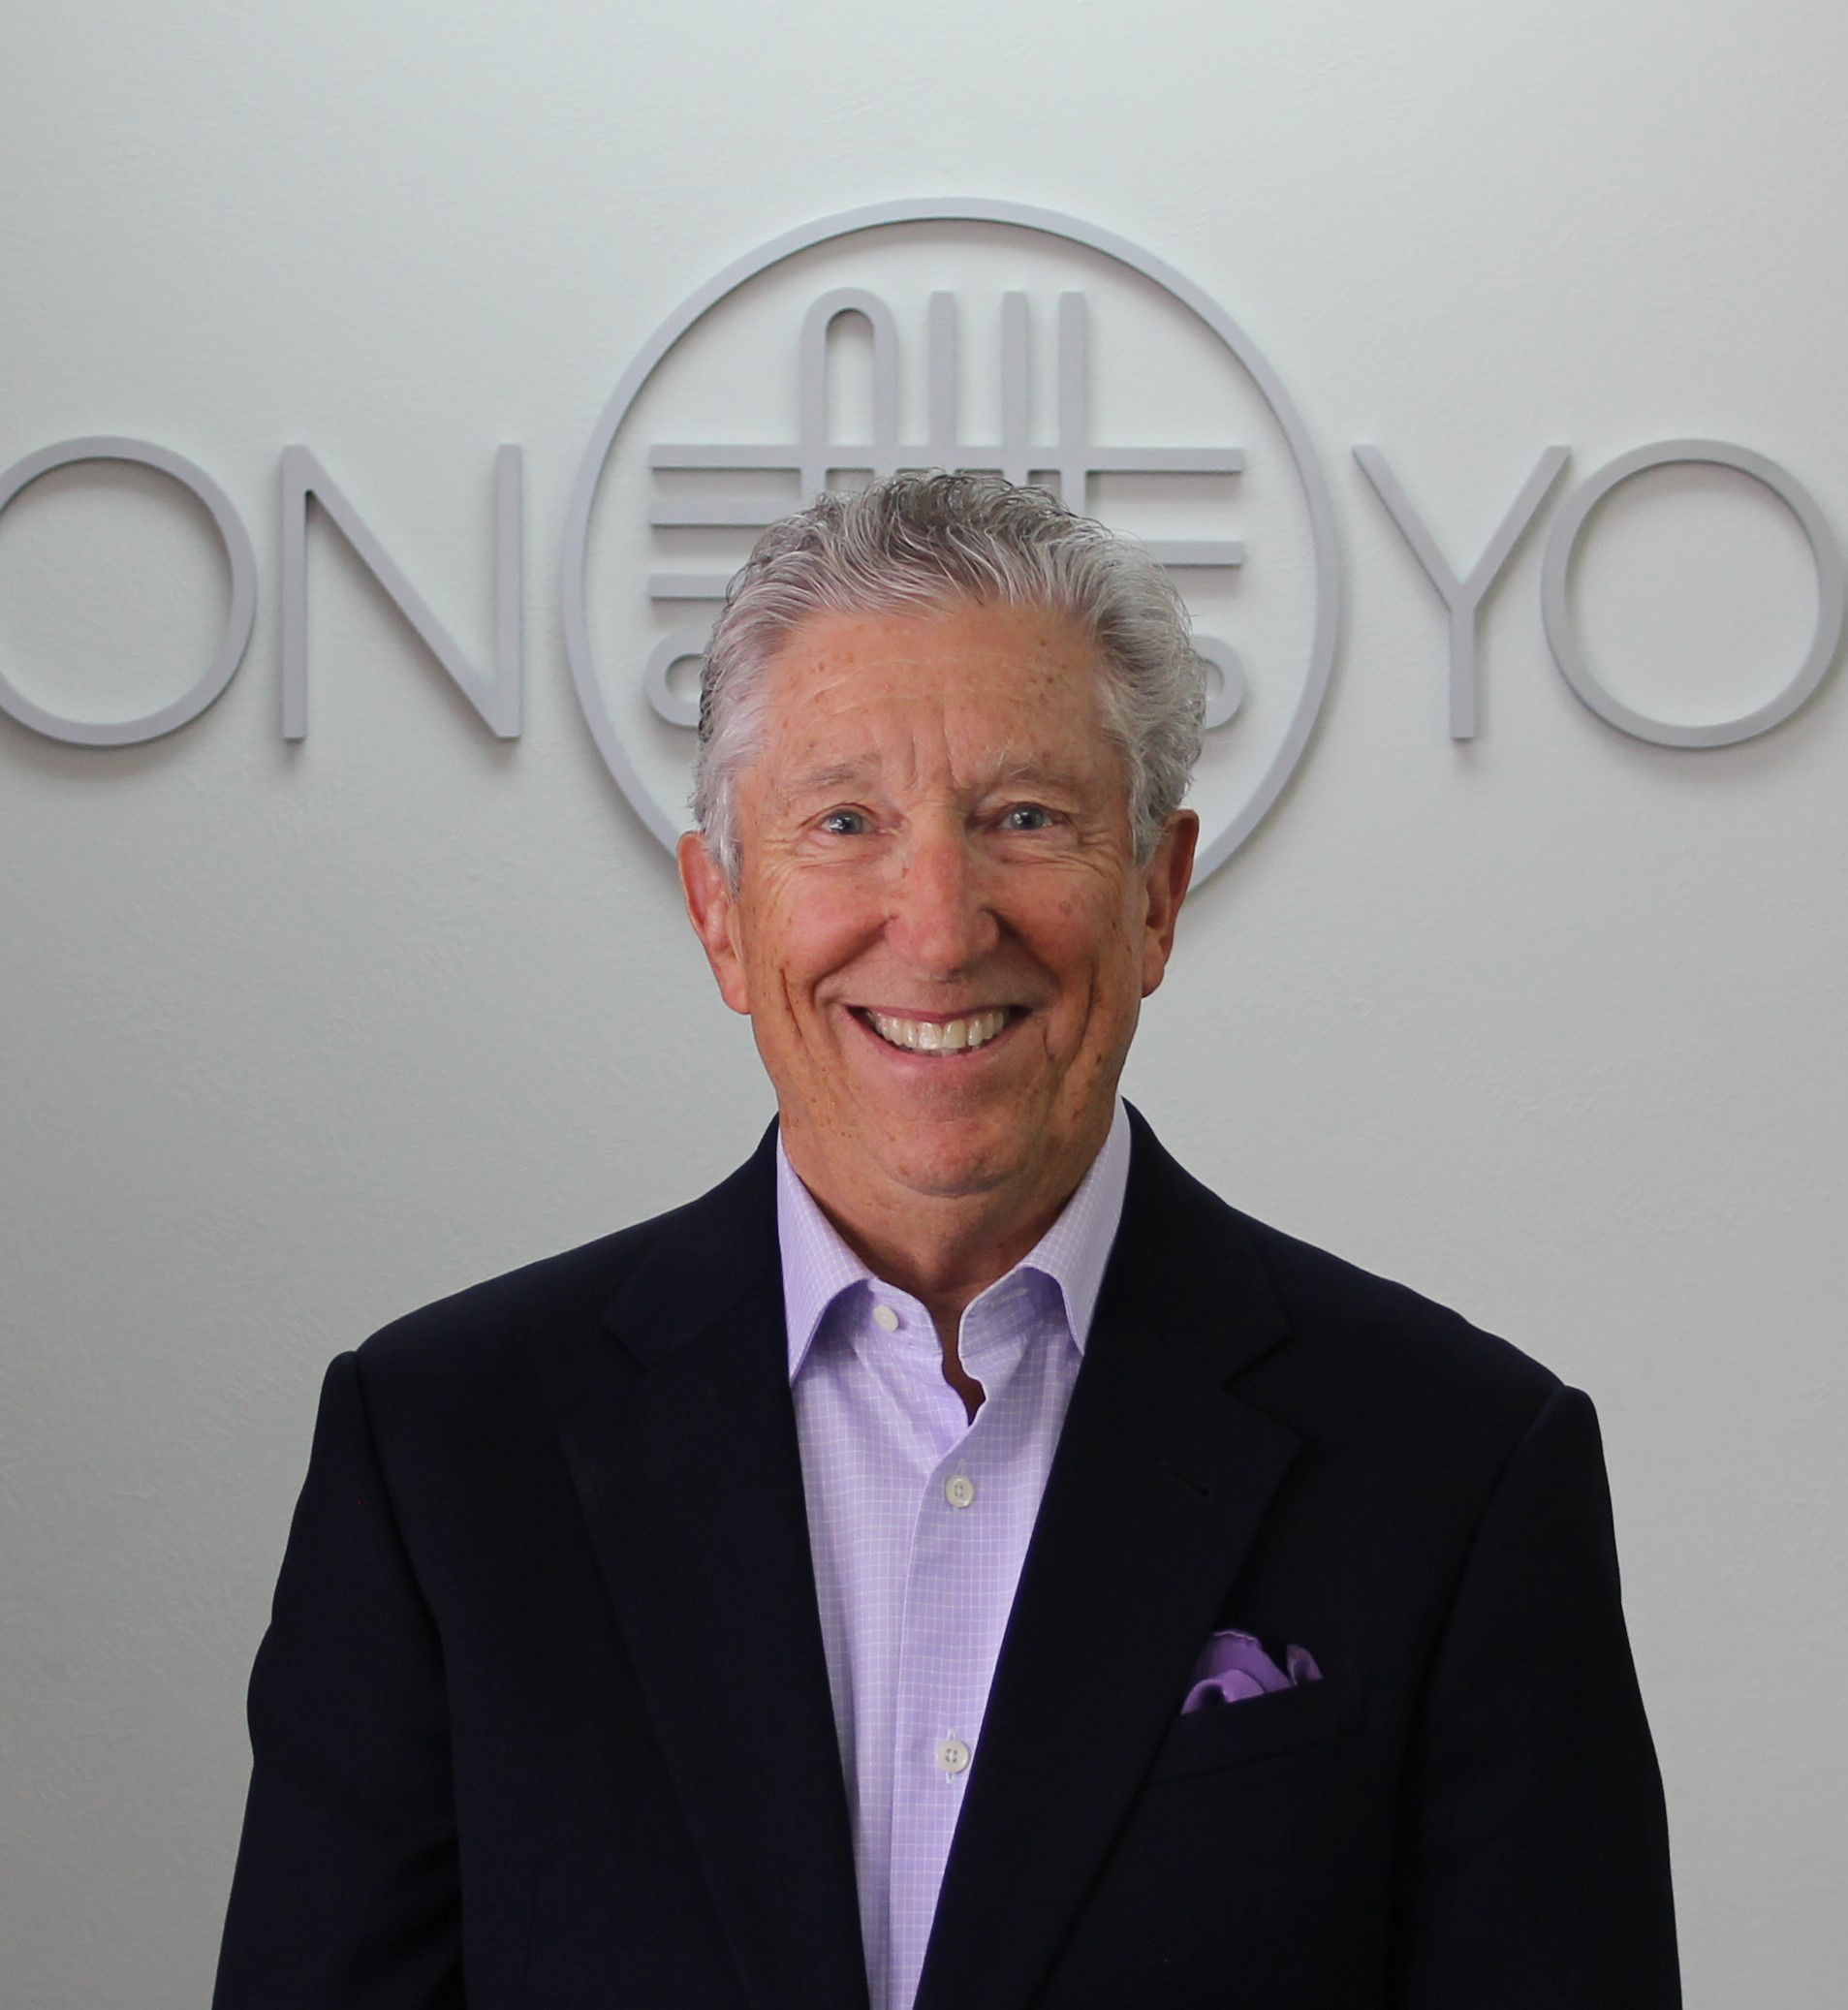 Ed Vierling - CEO